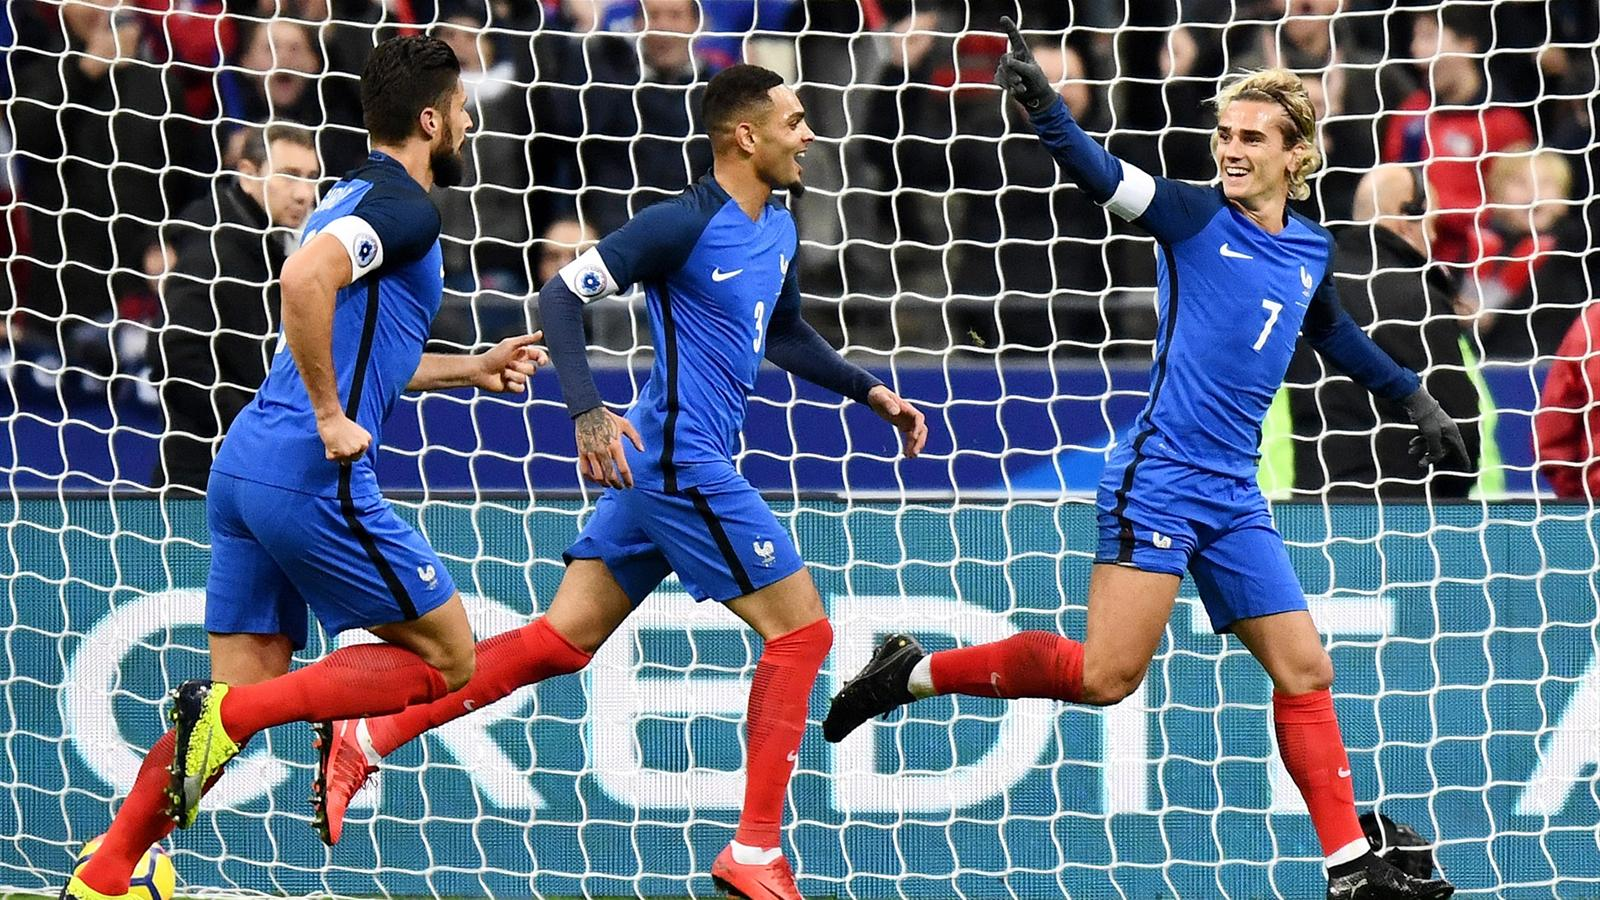 Equipe de france griezmann en 10 une vraie solution match amical 2017 football eurosport - Resultat match coupe de france ...